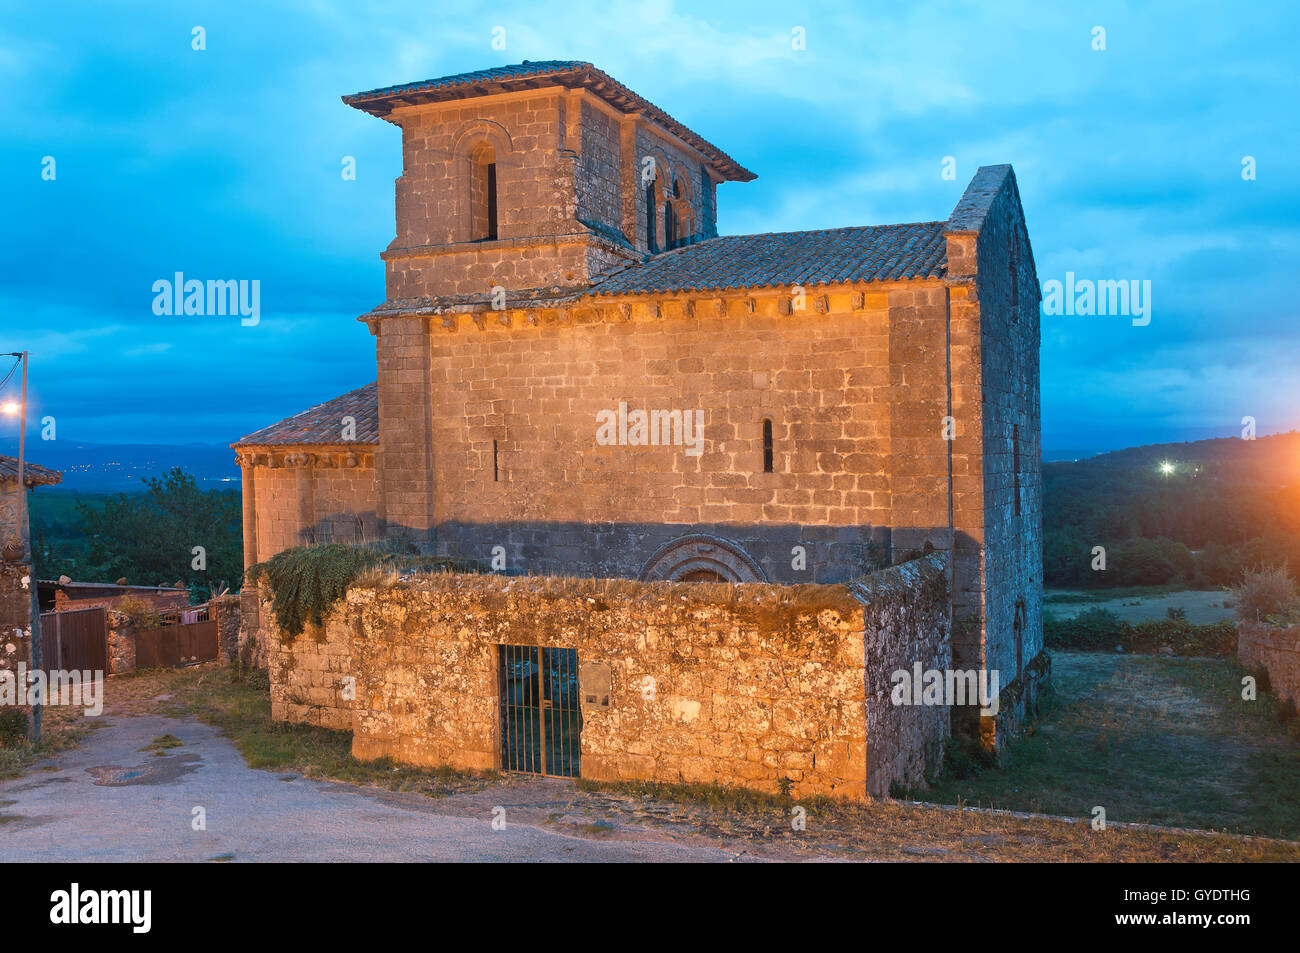 Church of the romanesque monastery of San Miguel-12th century, Eire, Lugo province, Region of Galicia, Spain, Europe - Stock Image